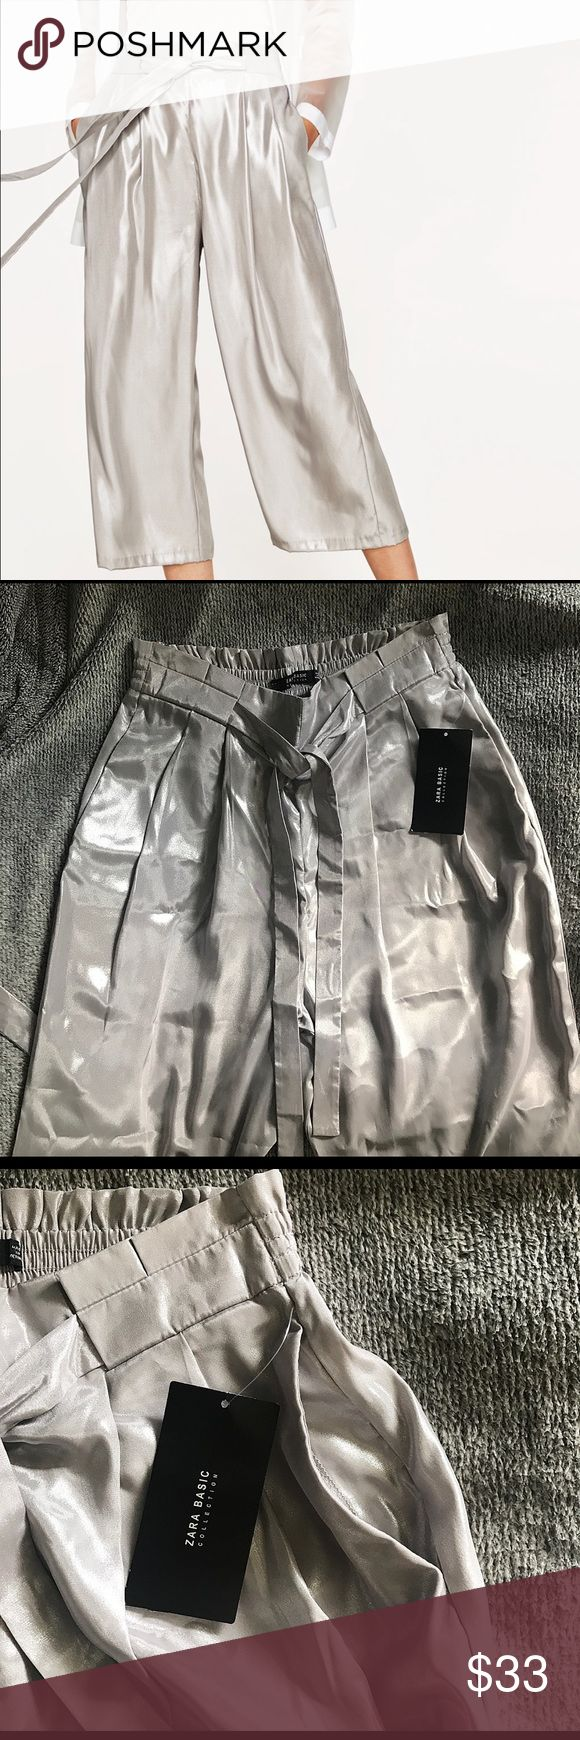 BNWT | ZARA HIGH WAIST CULOTTES | SILVER TROUSERS BRAND NEW WITH TAGS | ZARA CULOTTES WITH PLEATS  | HIGH WAIST TROUSERS | WITH POCKETS & BELT | I HAVE SIZE XS & S | SILVER METALLIC SHEEN COLOR | SUPER CHIC Zara Pants Trousers